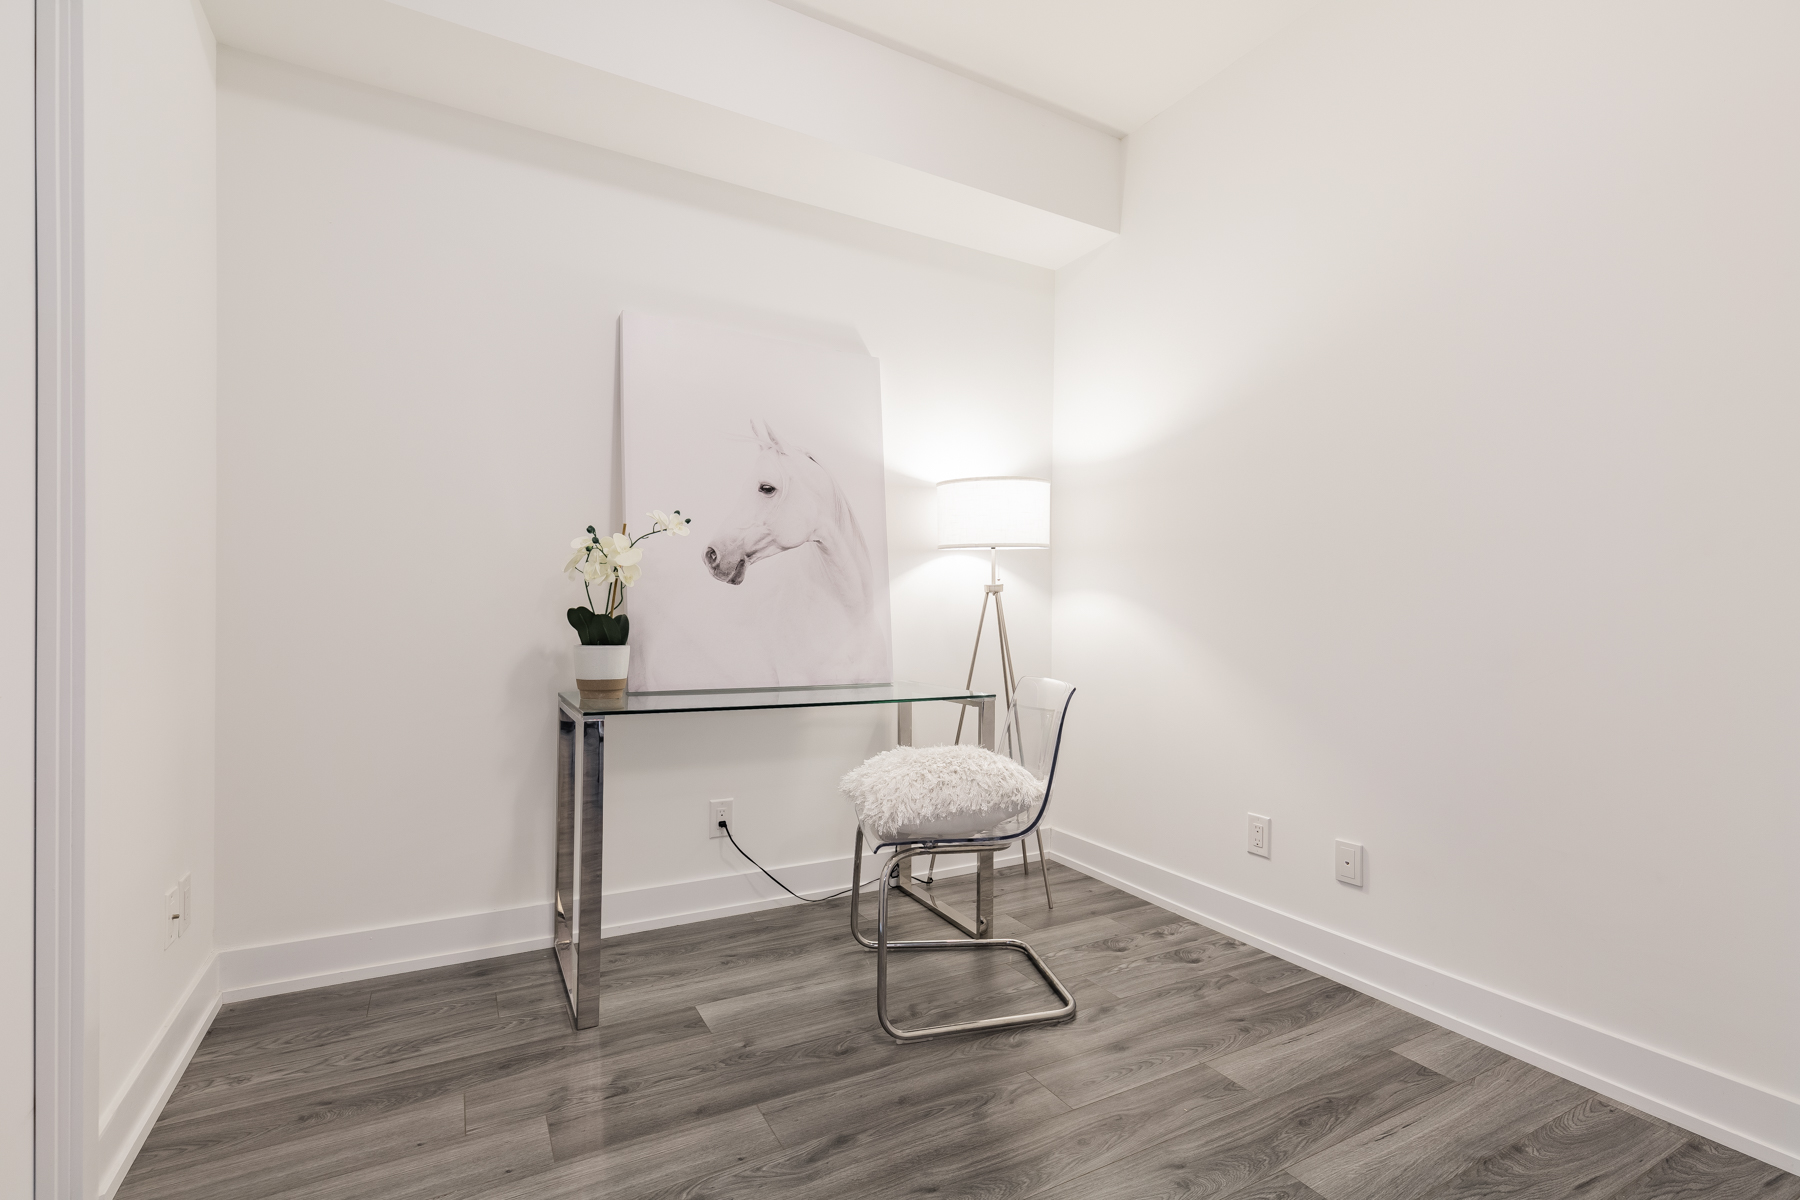 Condo den with desk, chair and horse painting.